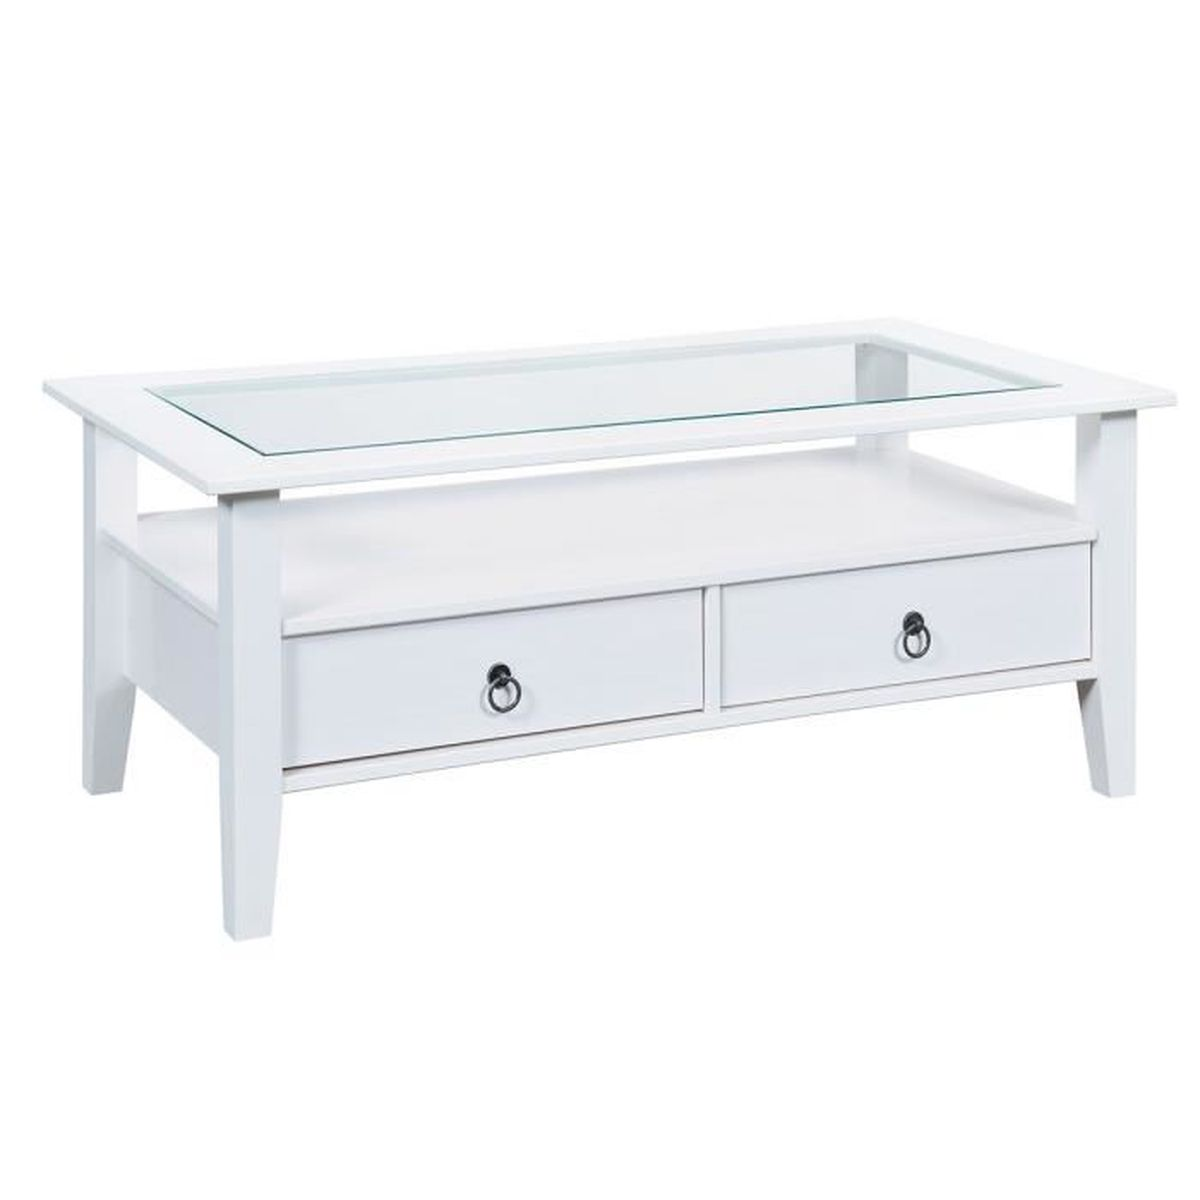 Table basse bois blanc et verre for Table basse blanc bois